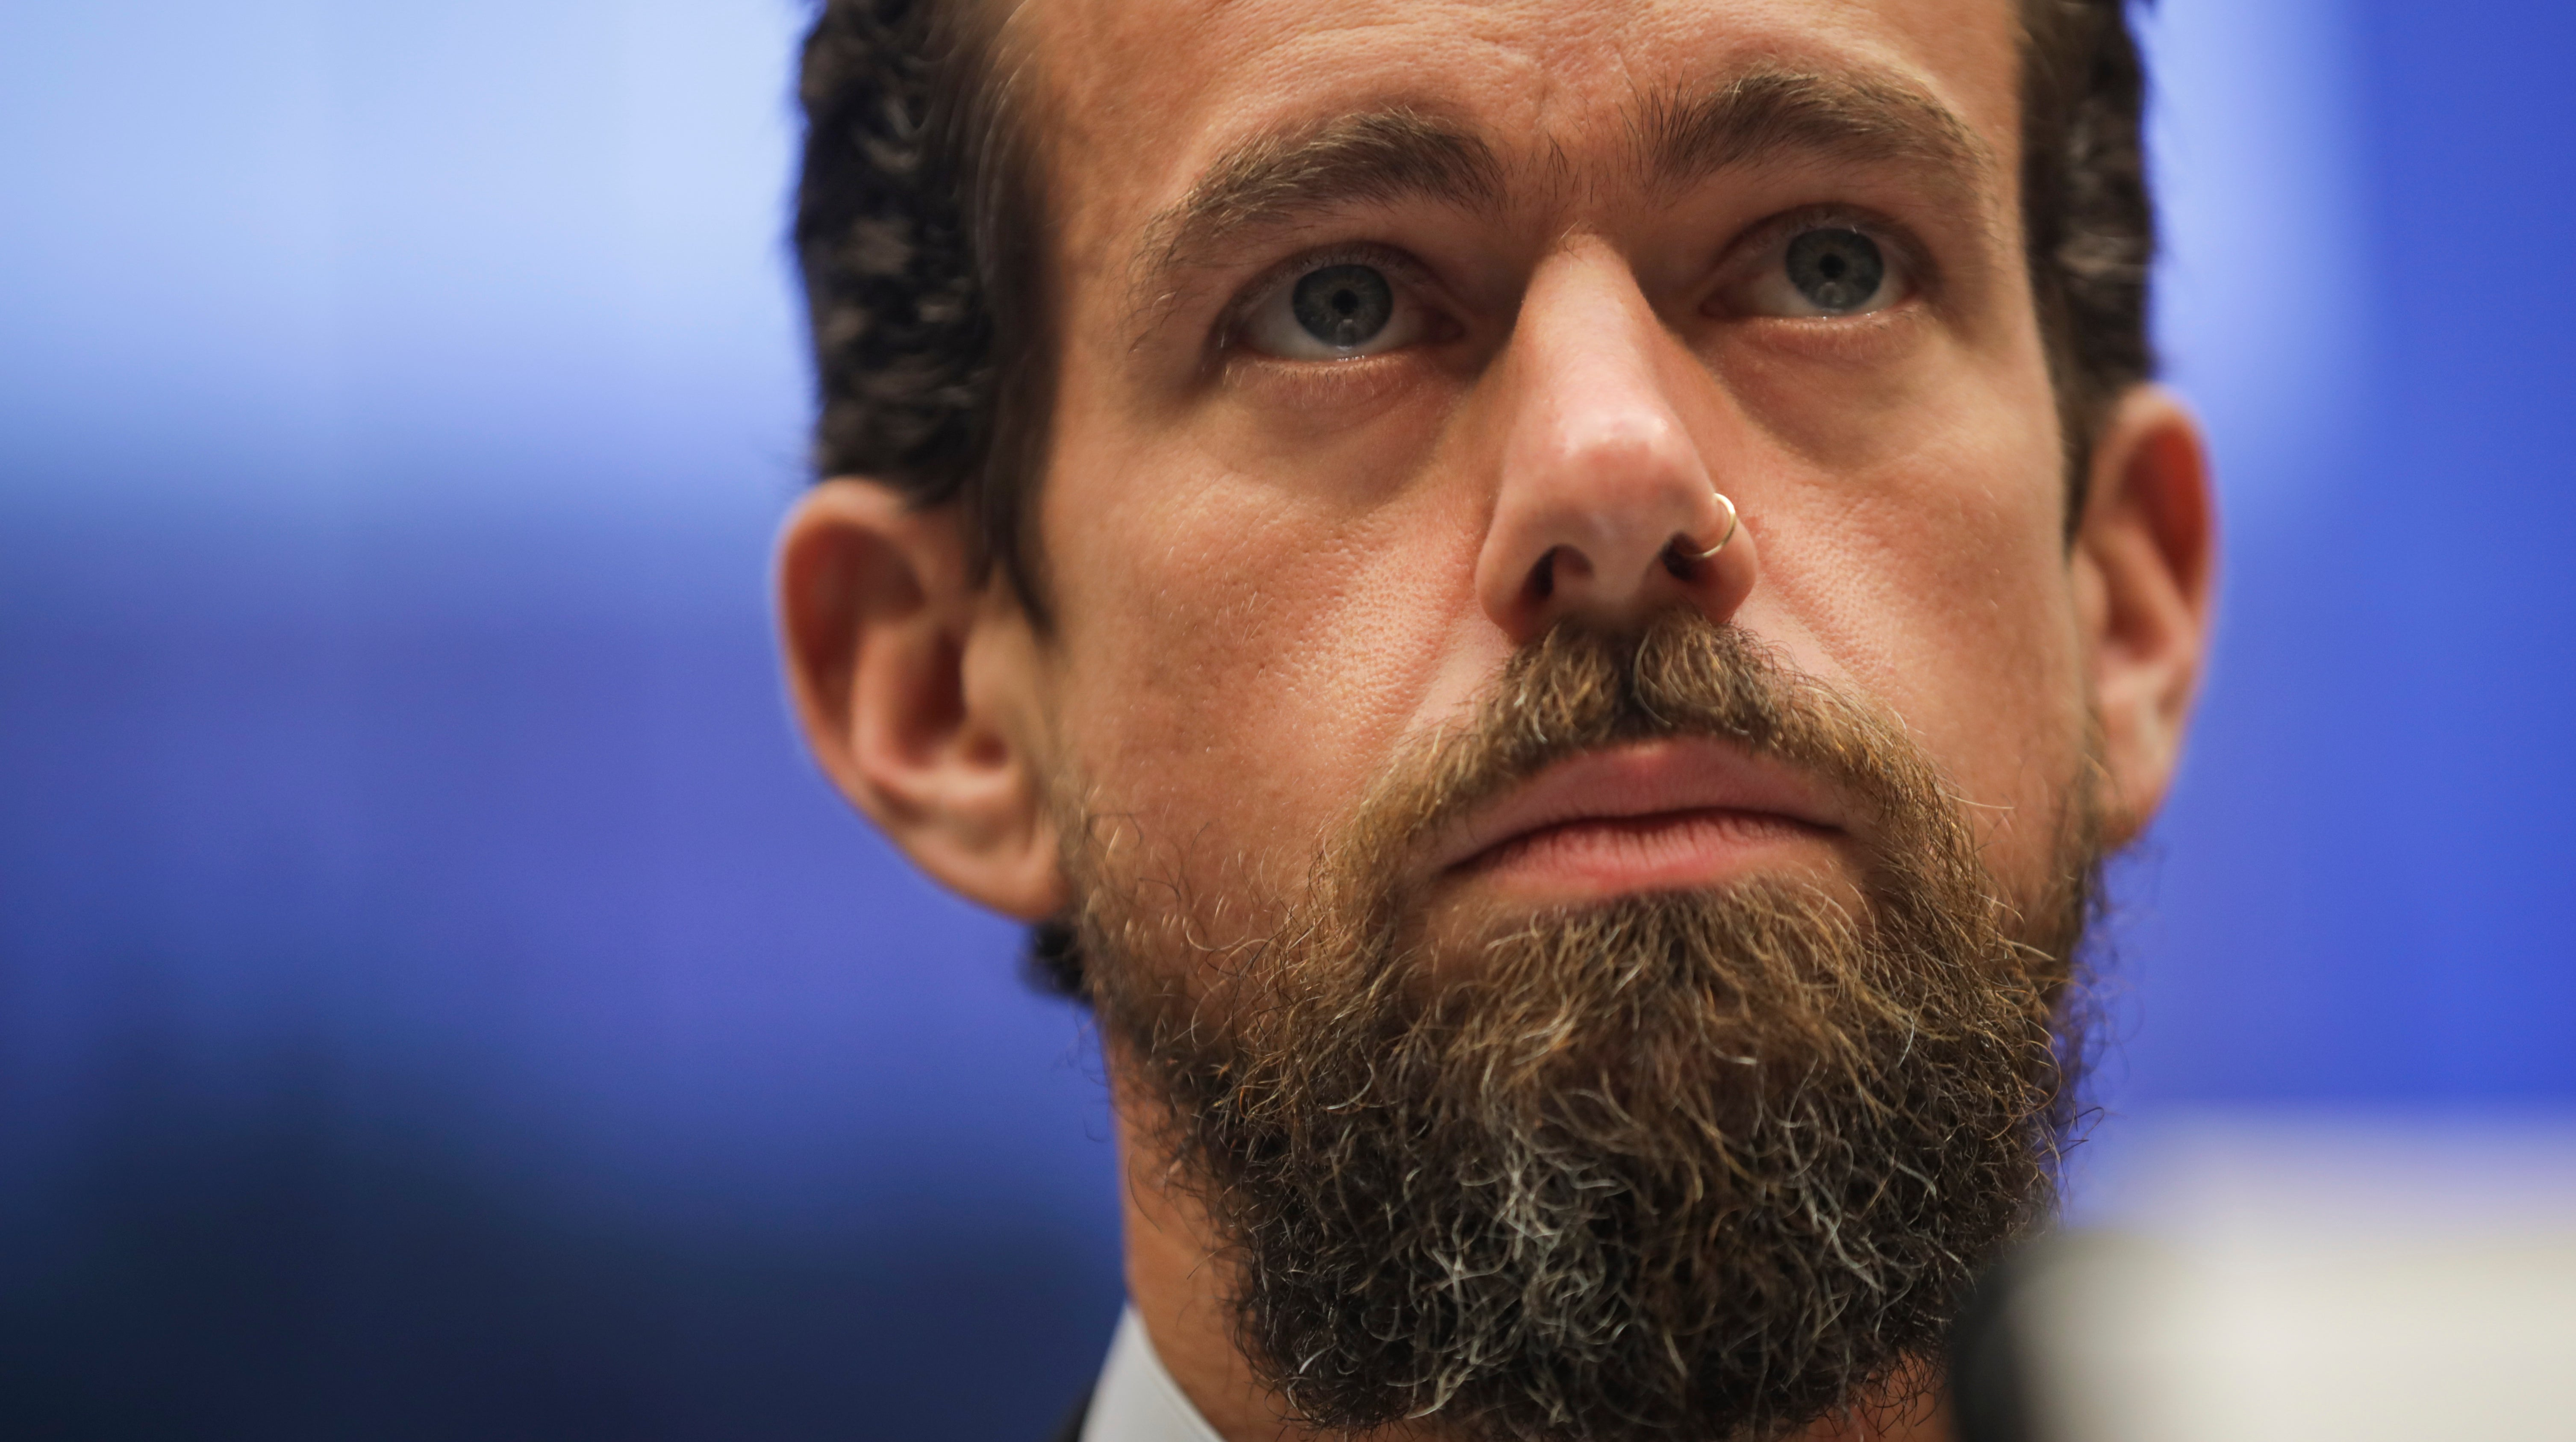 Twitter CEO: We'd 'Talk About' Banning Trump If He Told Followers To Kill Journalists